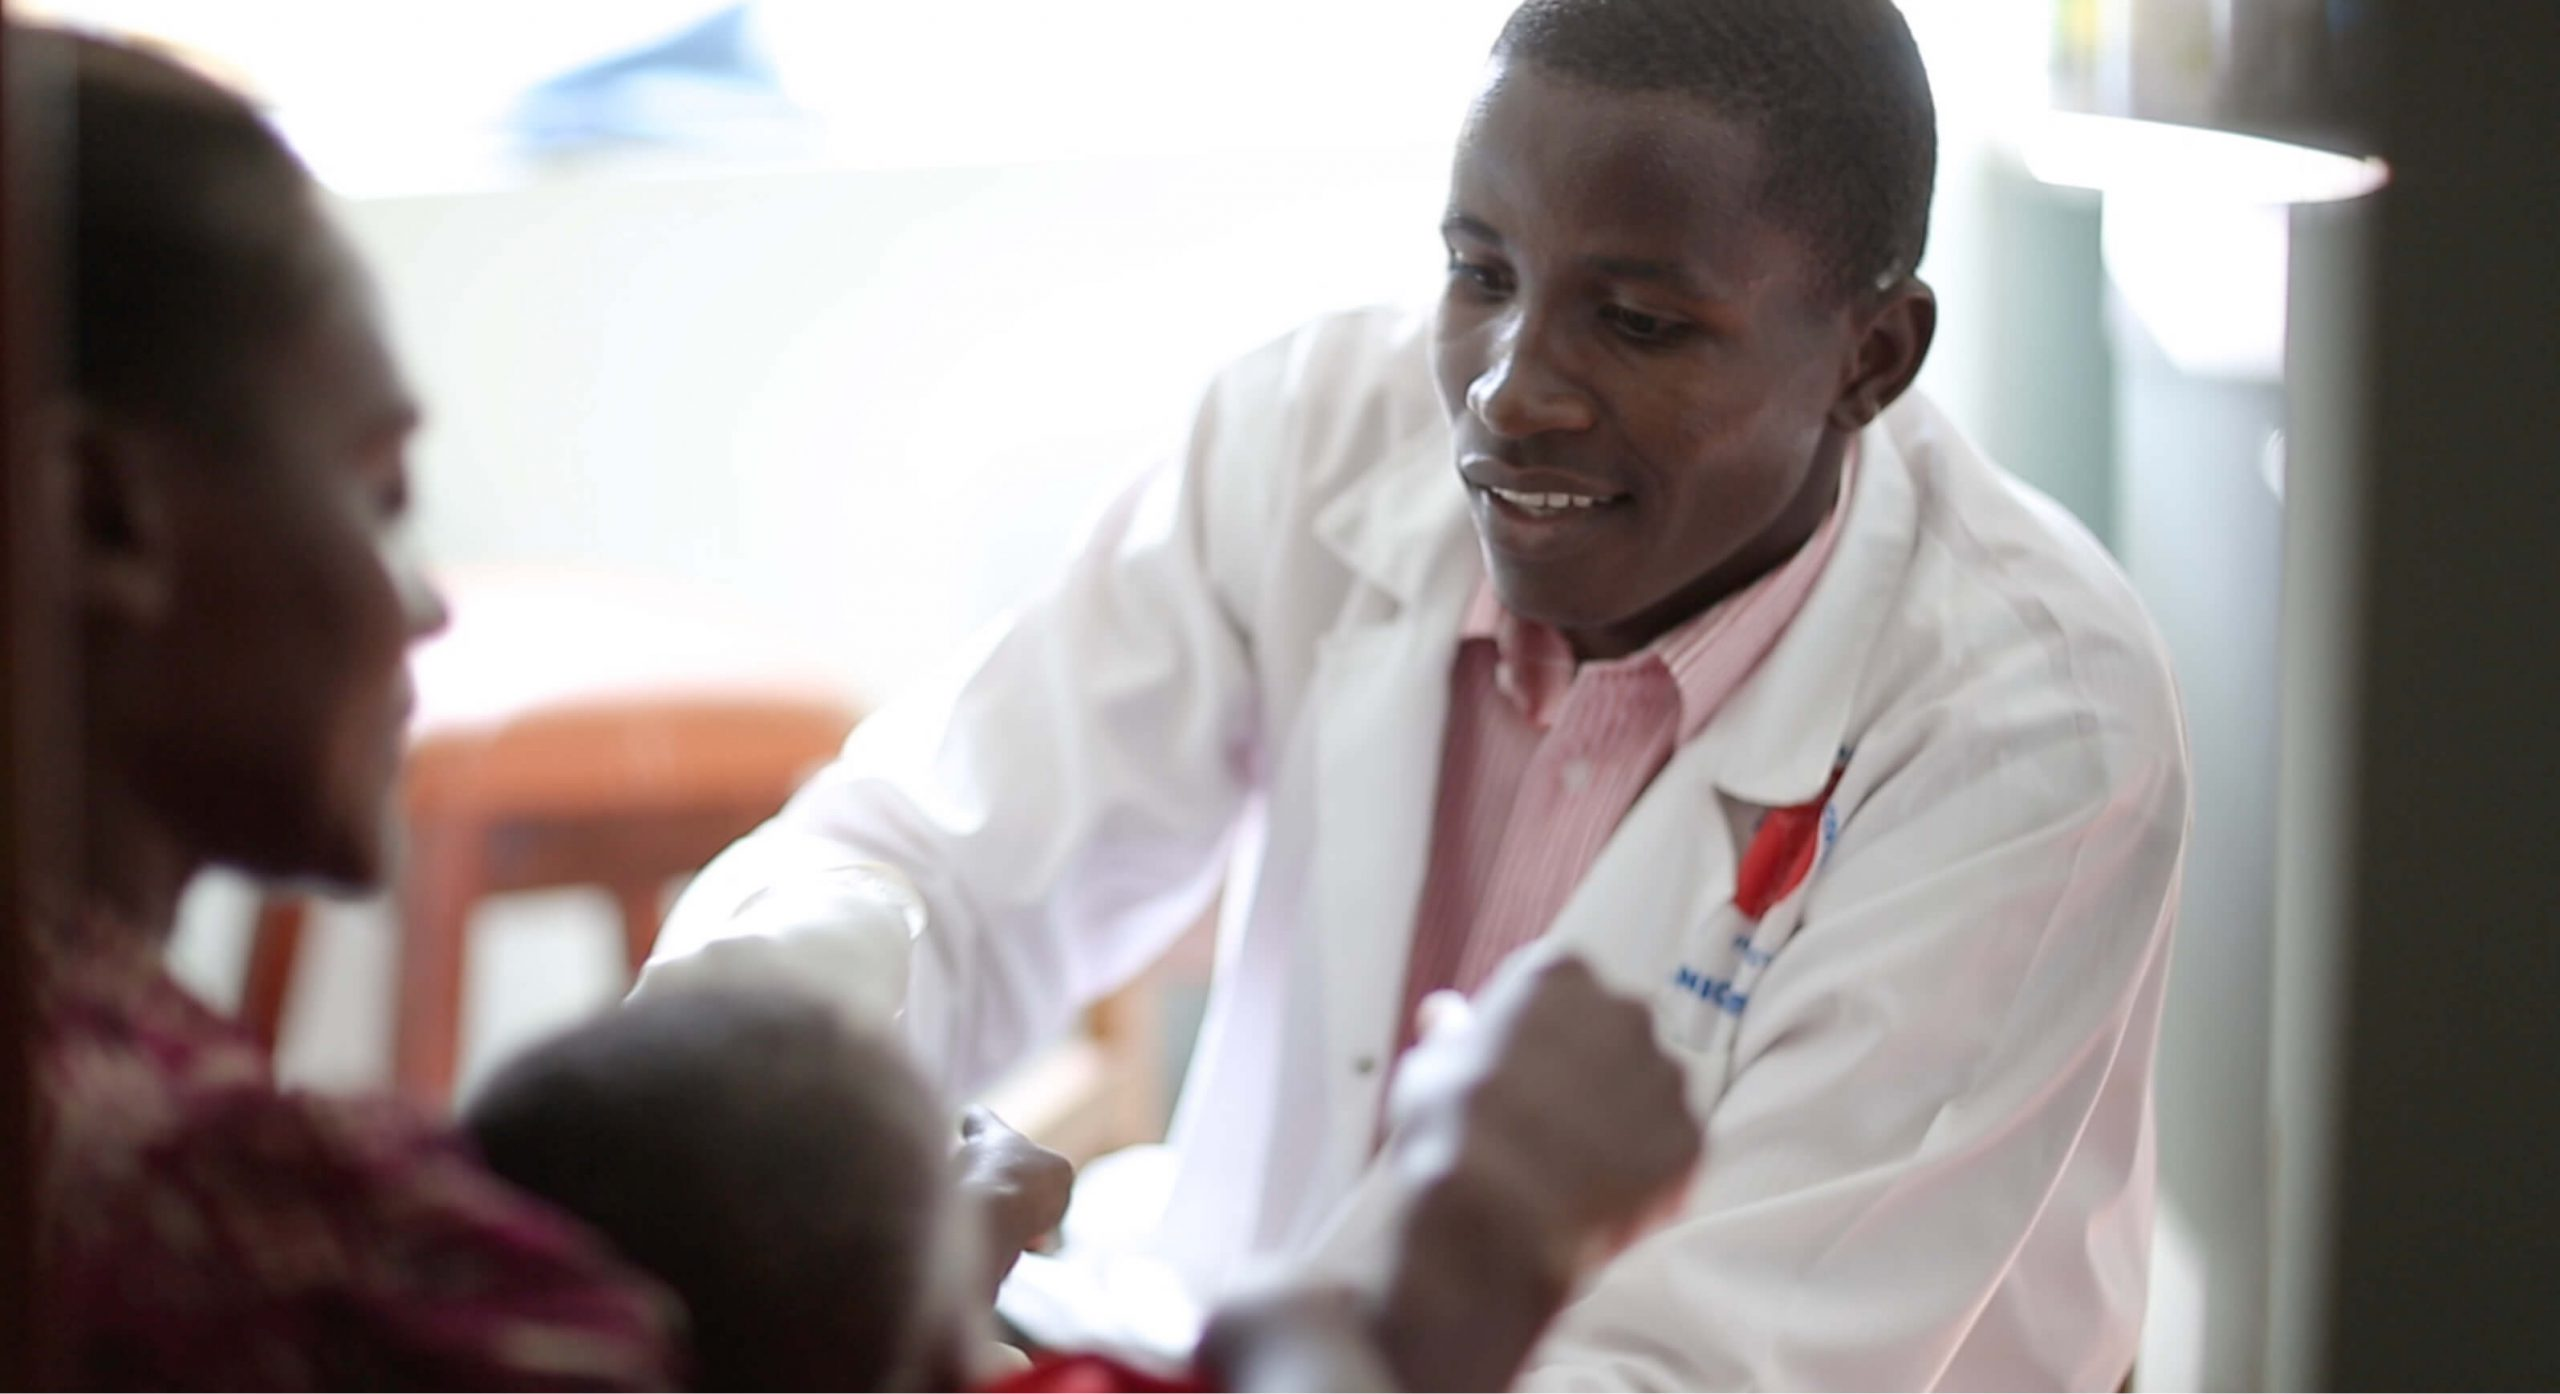 a doctor helping a child